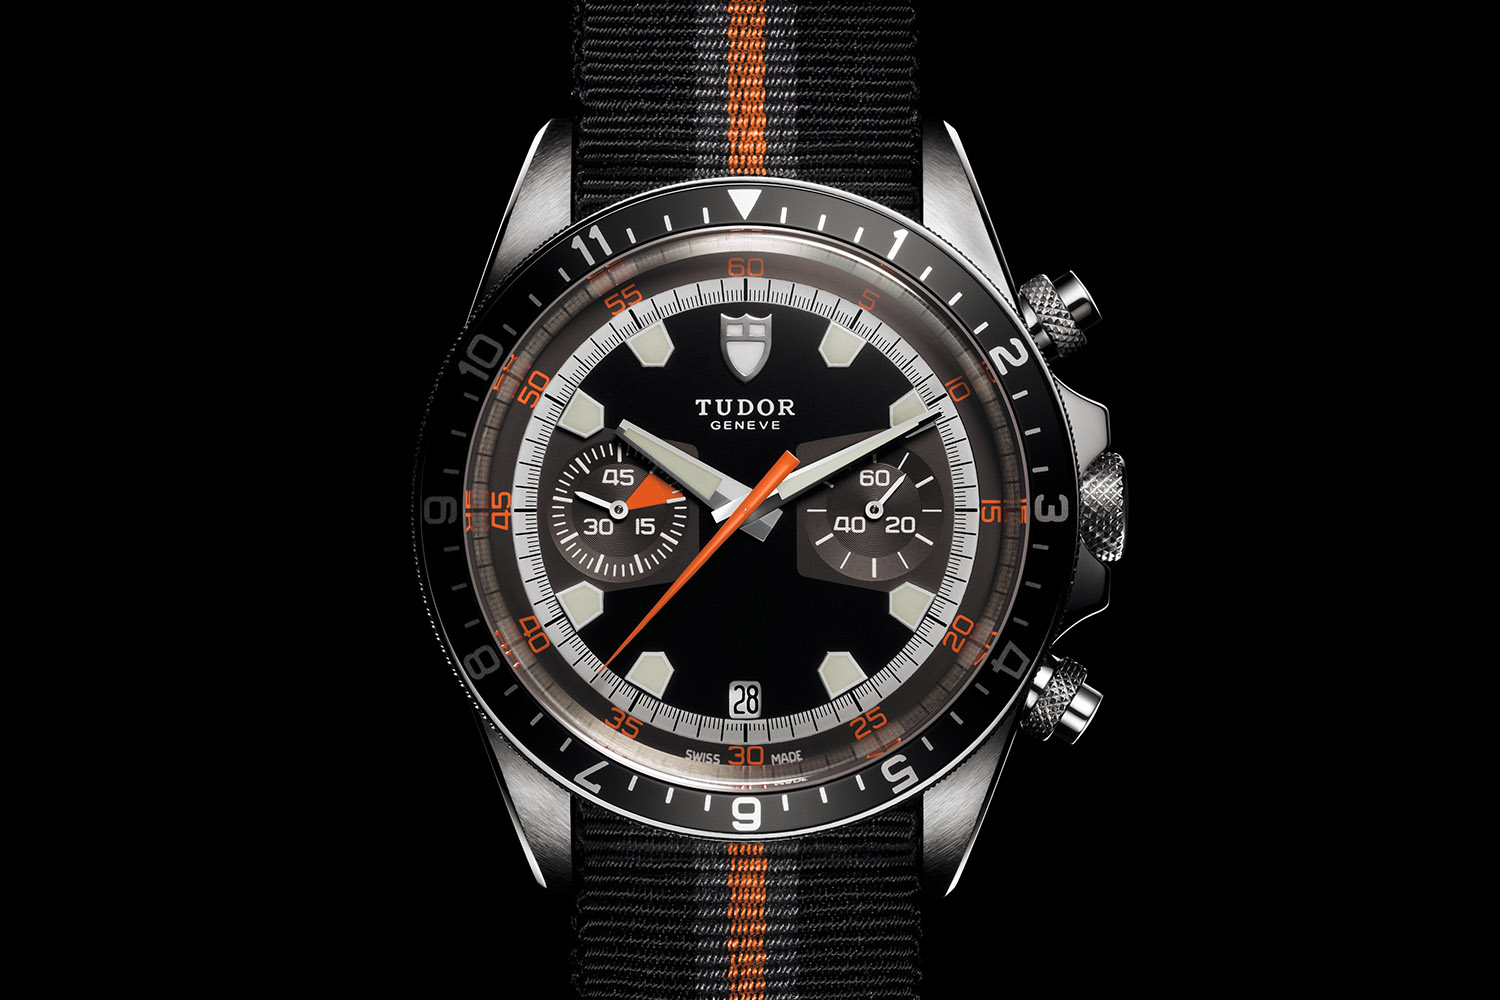 Tudor and its Heritage